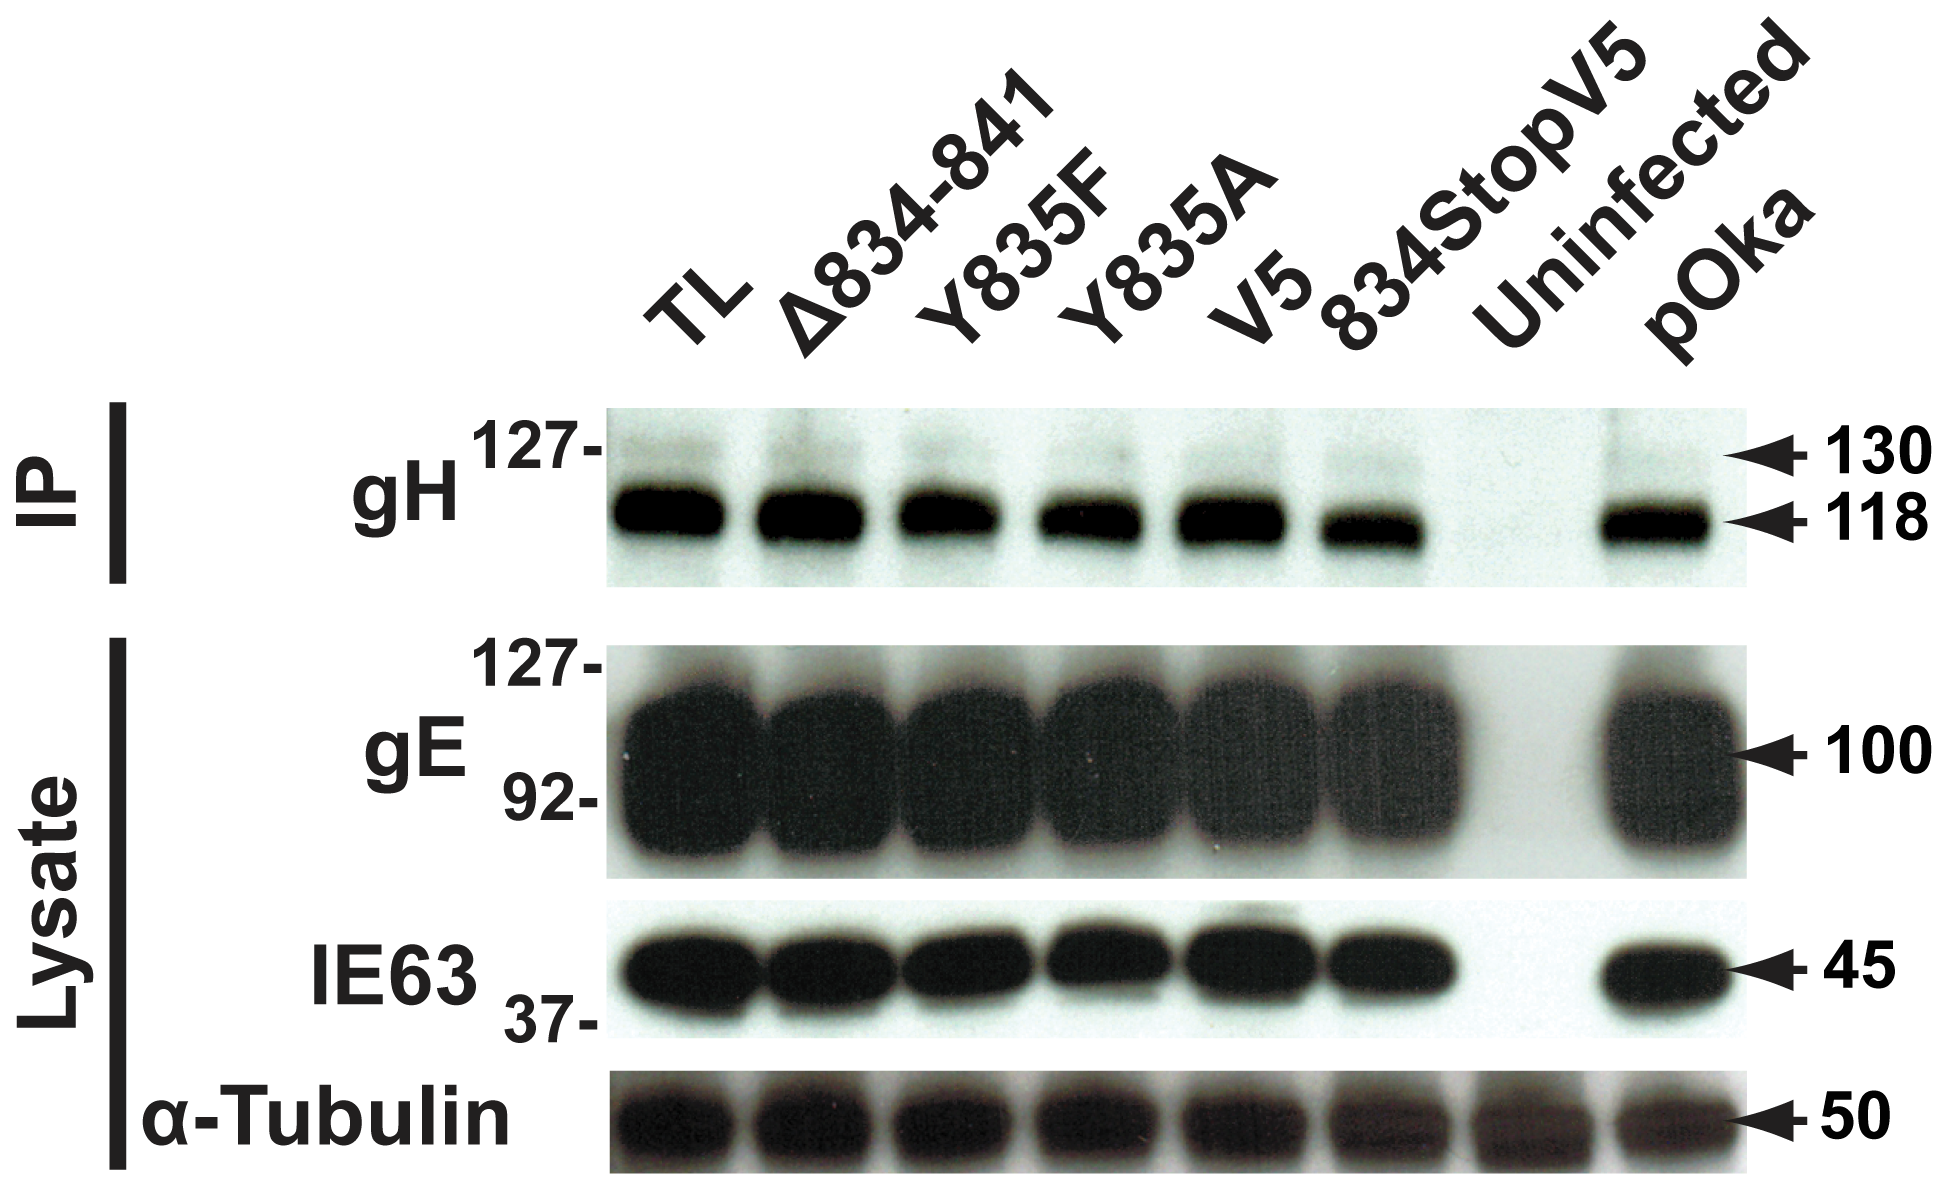 Amino acids 834-841 of the gHcyt are dispensable for gH maturation during infection of melanoma cells.